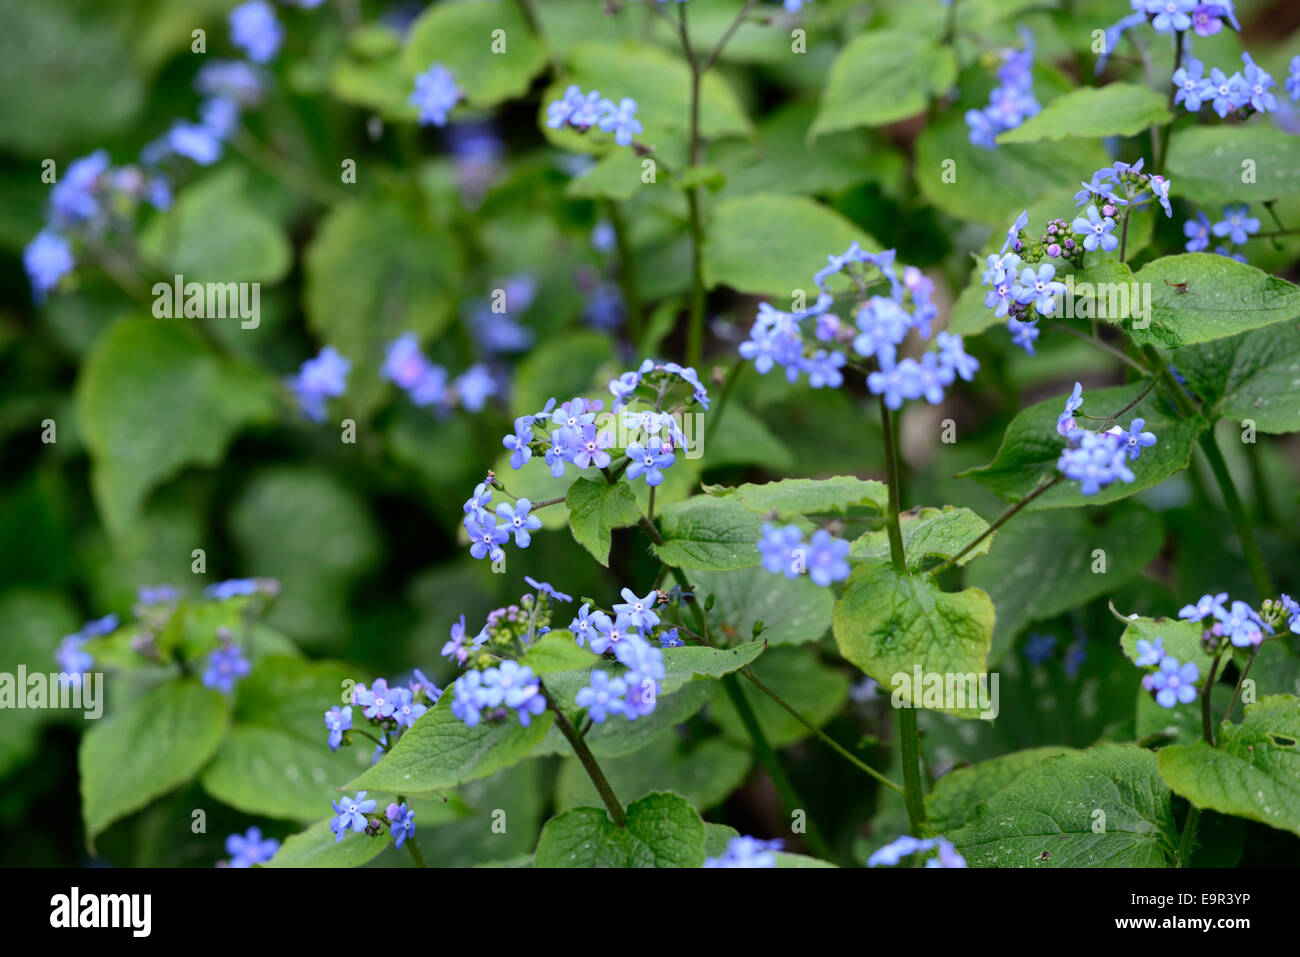 Shade groundcover stock photos shade groundcover stock images alamy omphalodes verna blue eyed mary flower flowering flowers groundcover shade bloom blooming blooms blossom blossoms izmirmasajfo